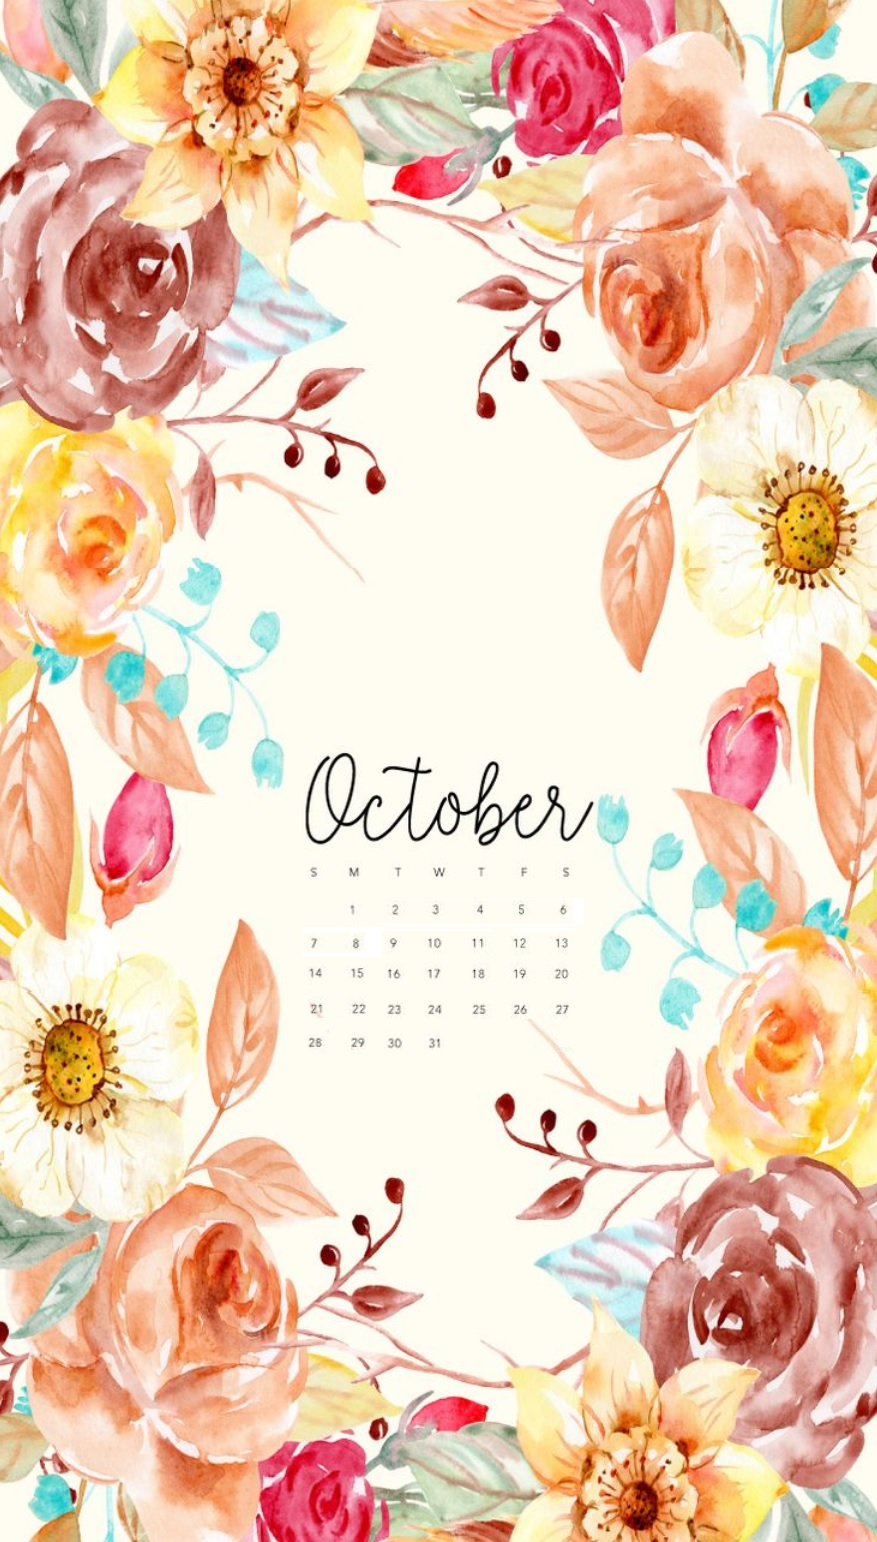 October 2018 iPhone Calendar Designs